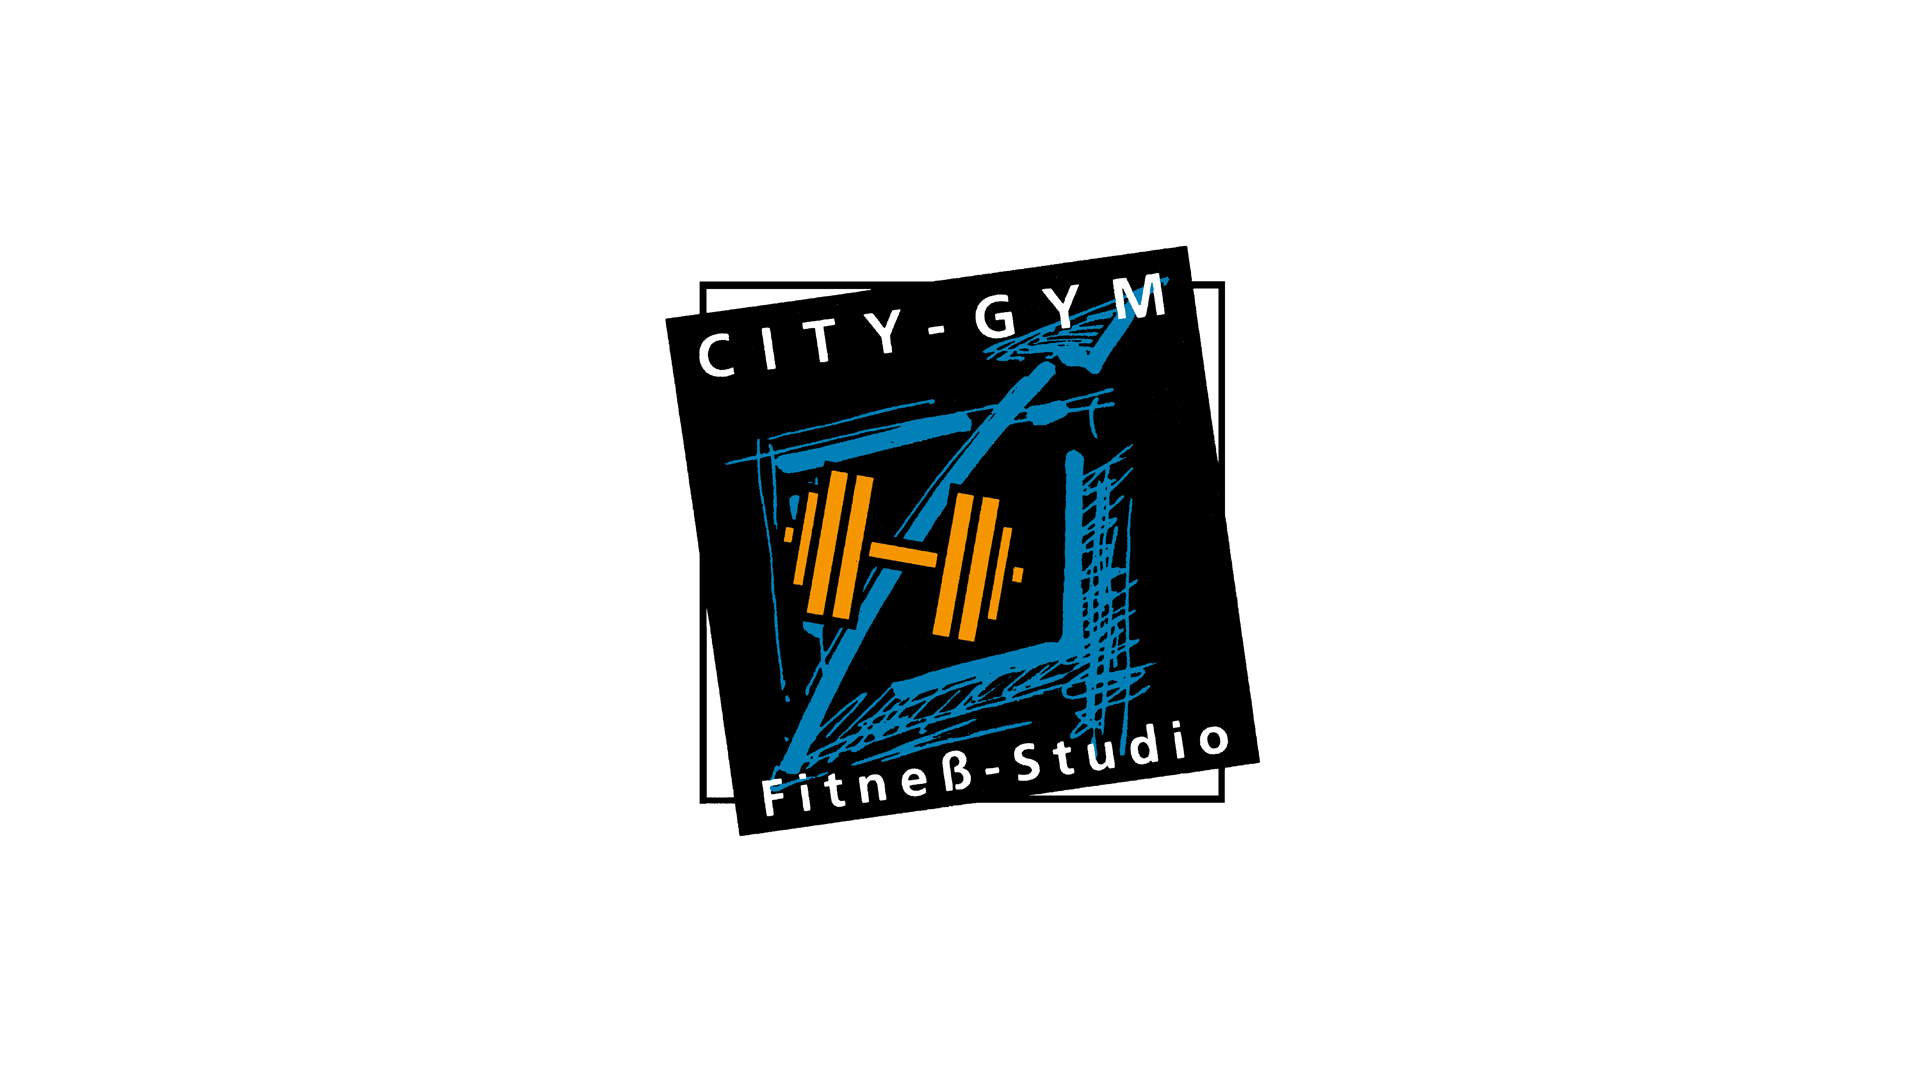 City-Gym. Fitneß-Studio: Logo, Printmedien